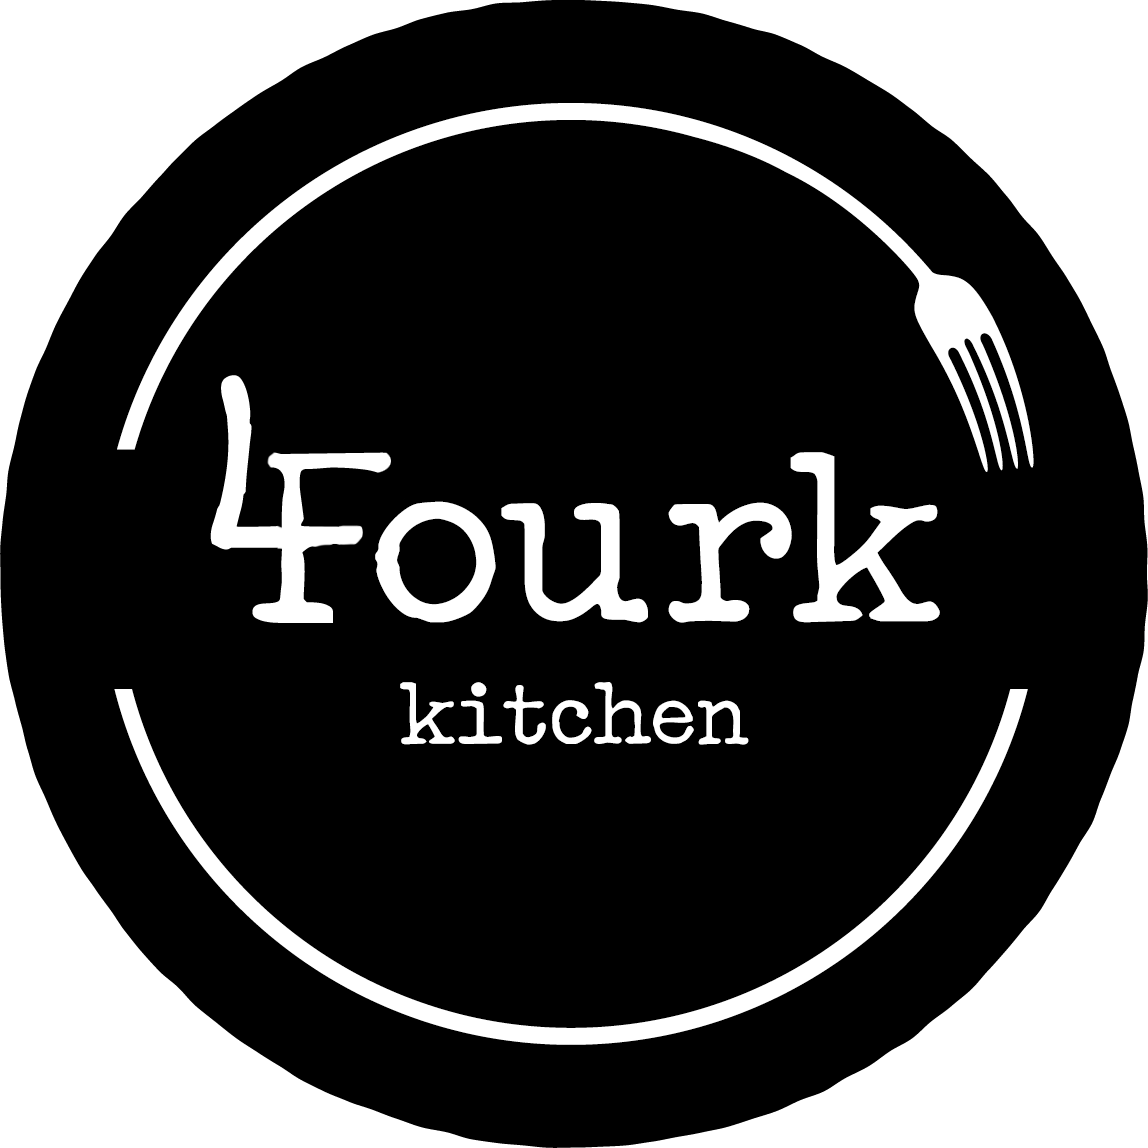 Fourk Kitchen